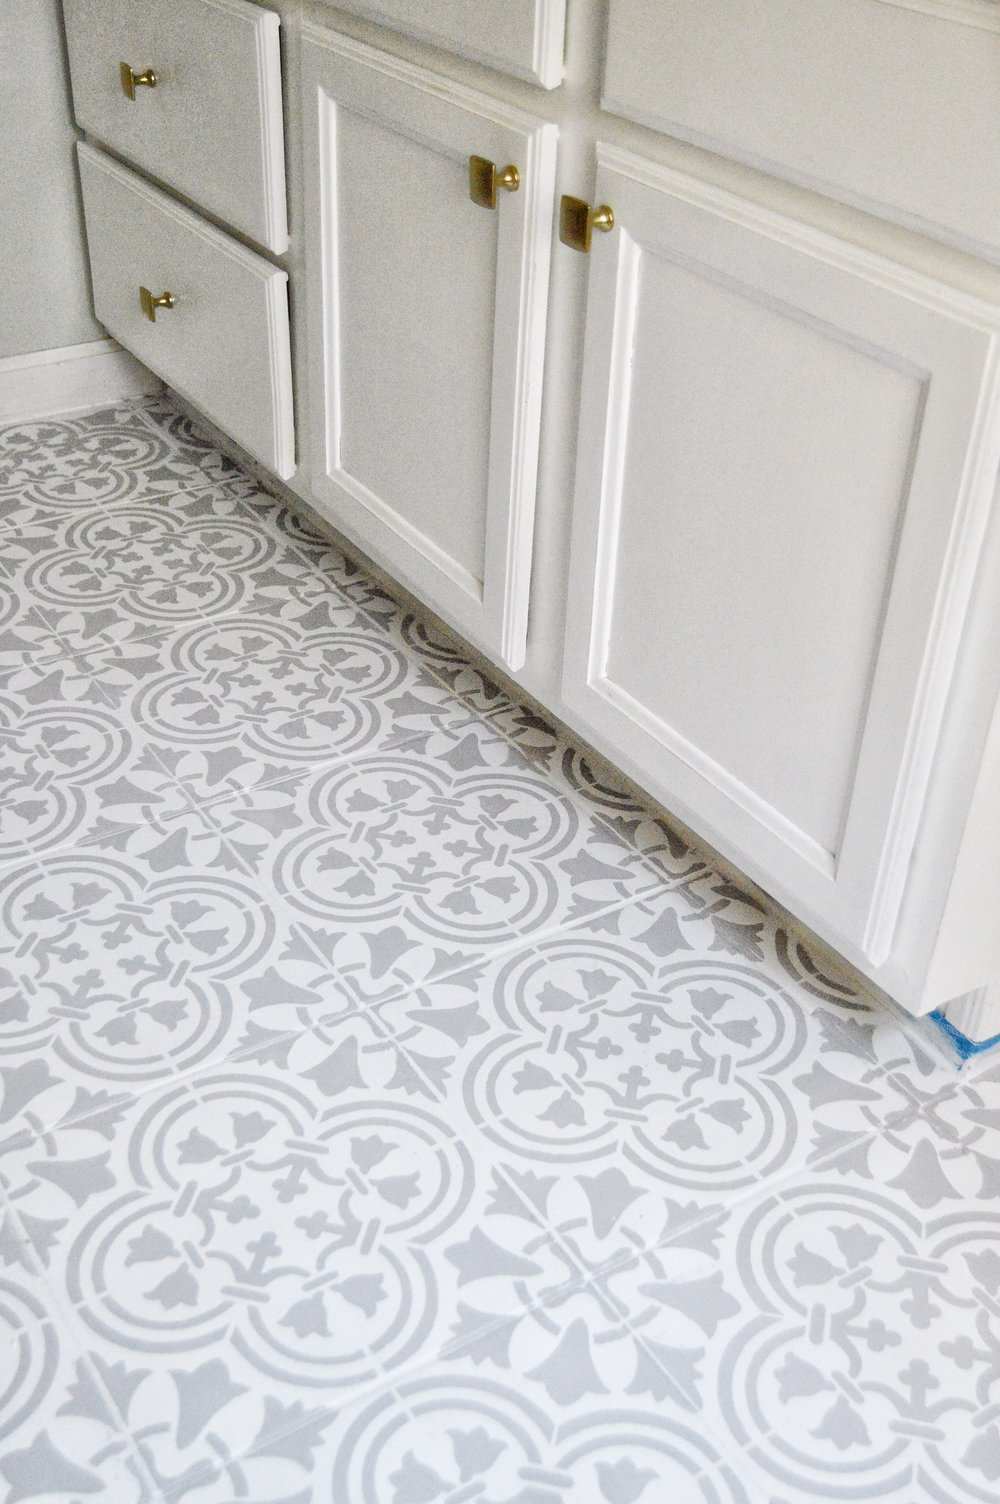 Ideas for Covering Up Tile Floors Without Removing It — The Decor ...